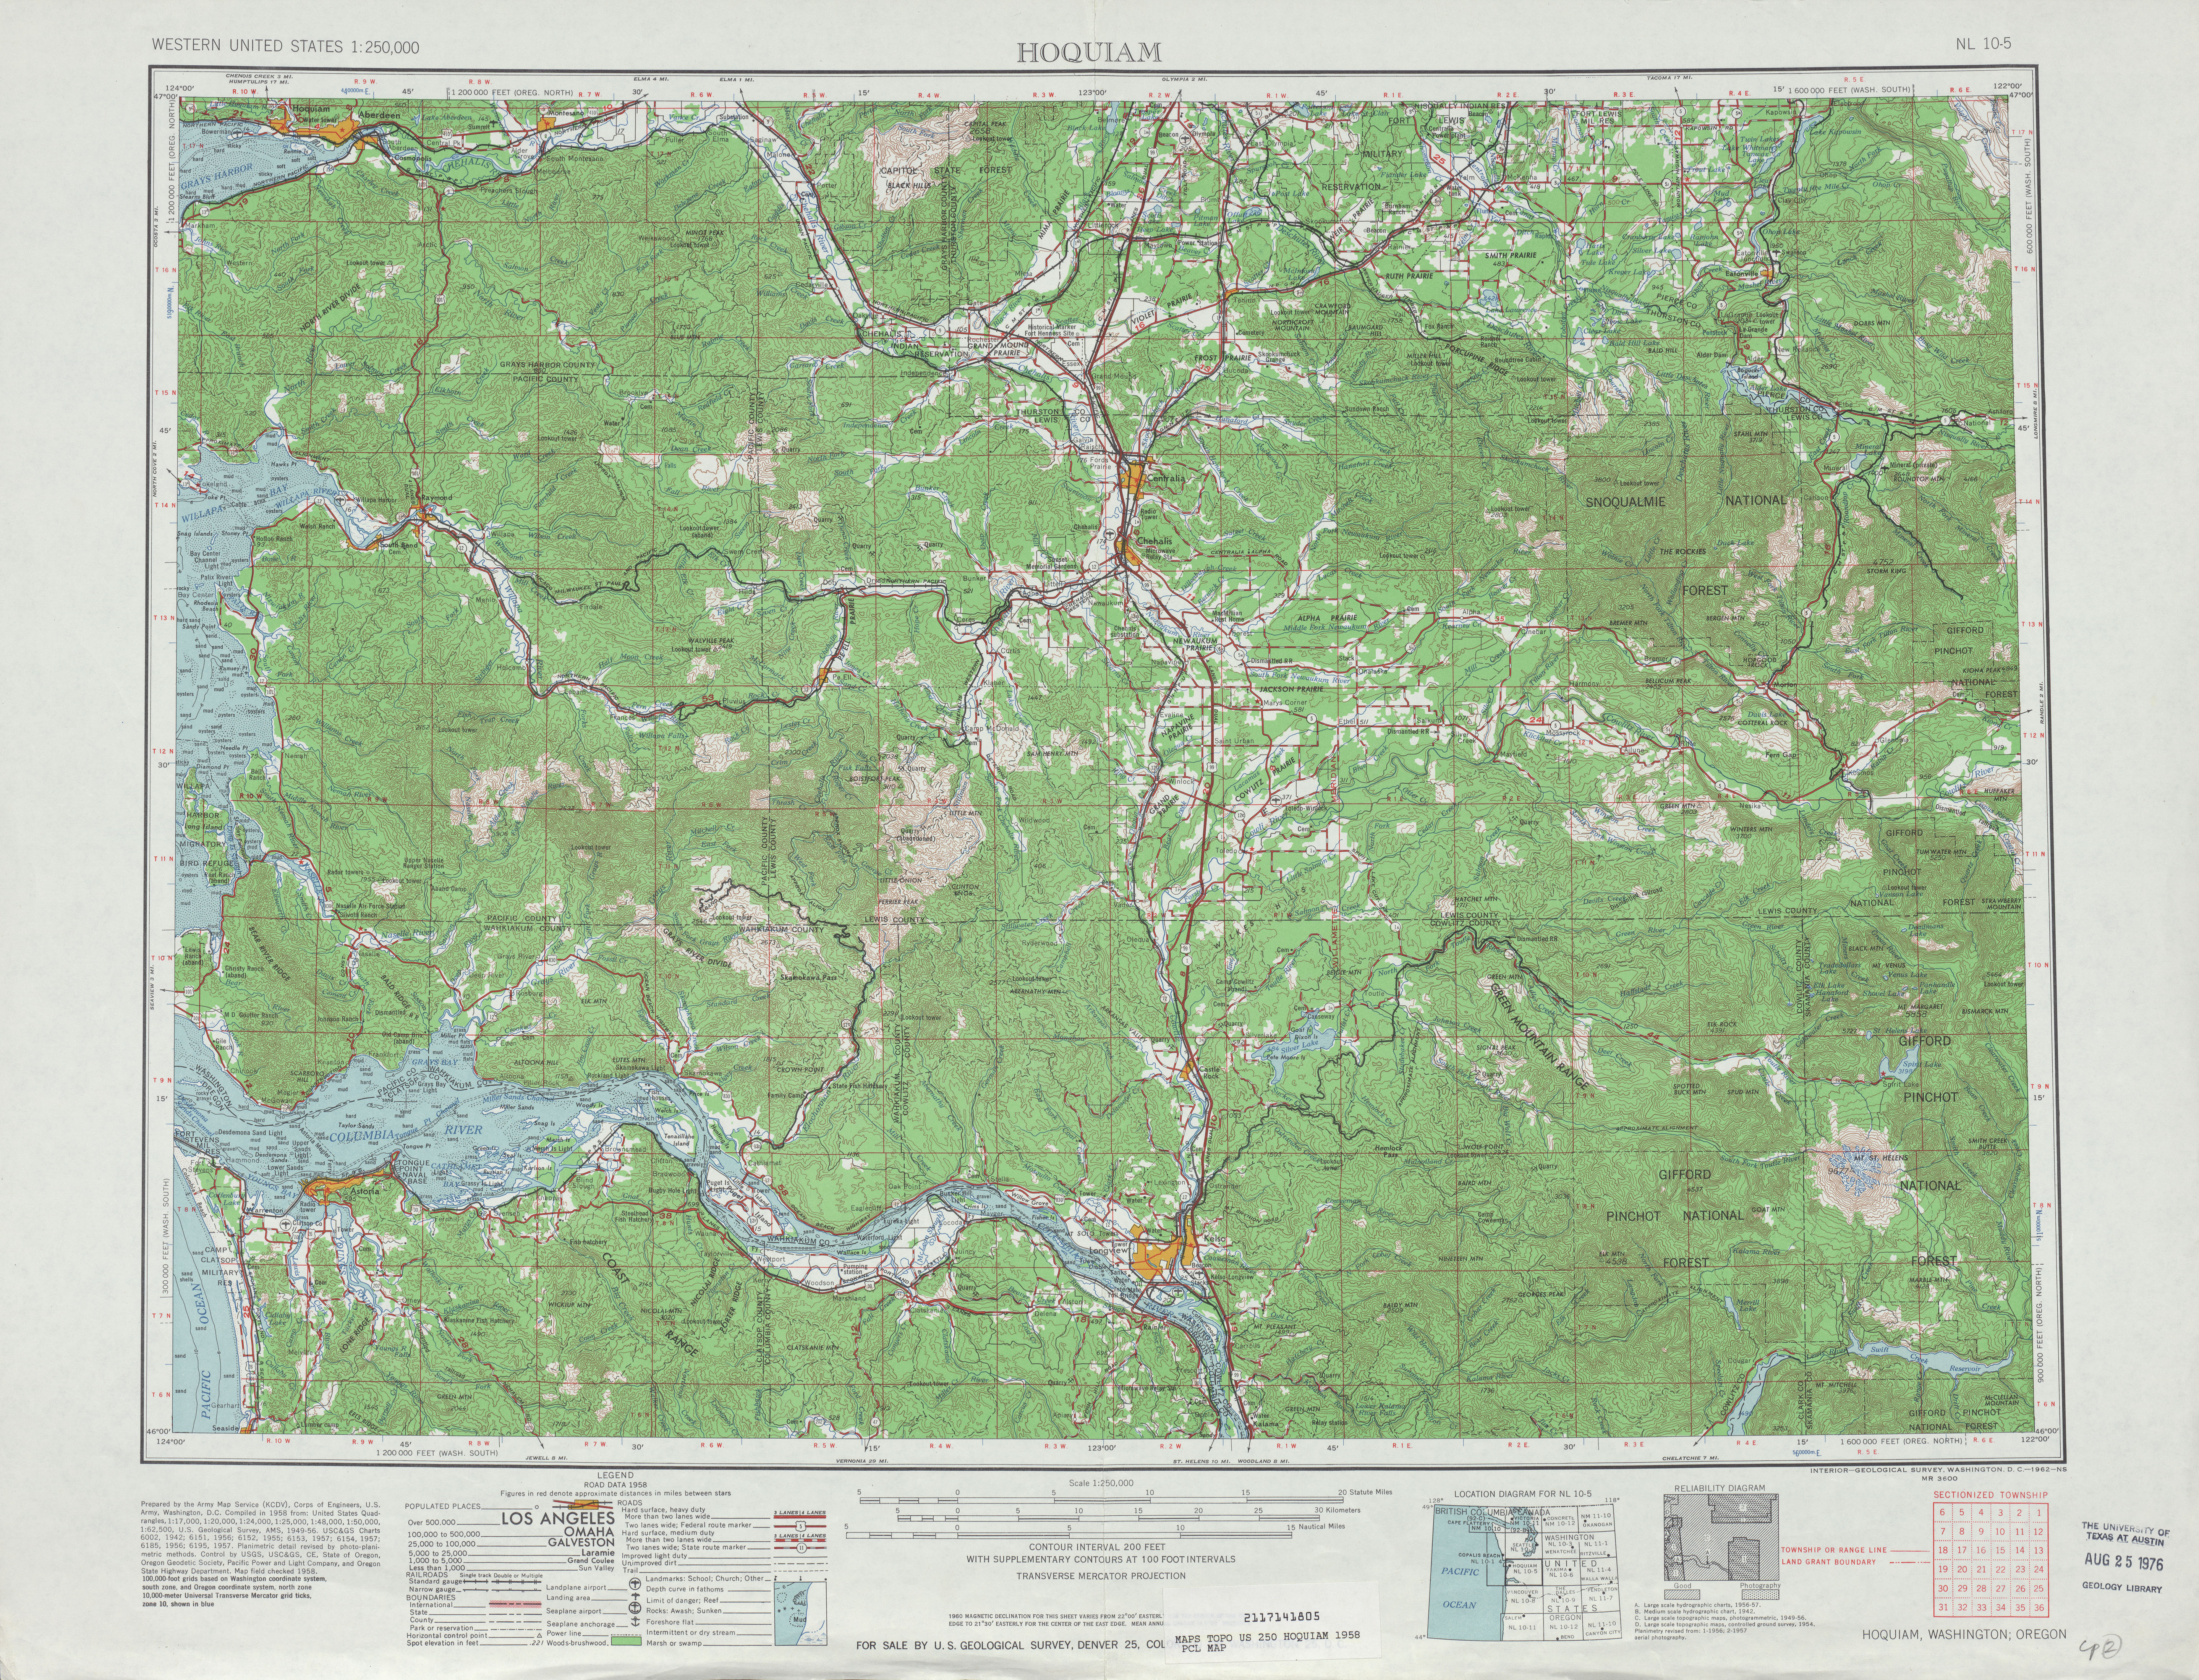 Hoquiam Topographic Map Sheet, United States 1958